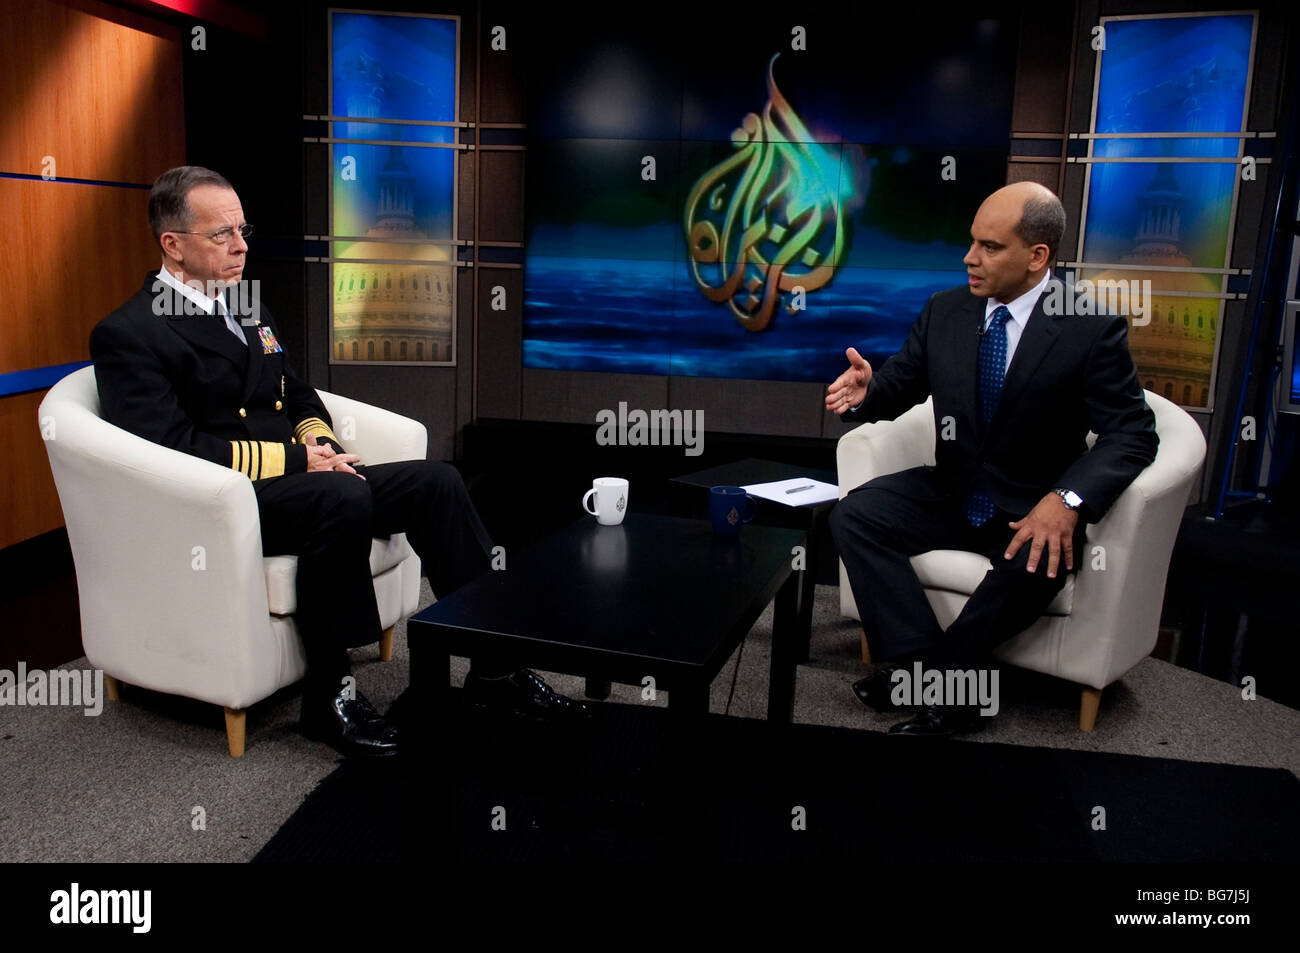 Staff Navy Adm. Mike Mullen interviewed by Abderrahim Fouka, of the Al Jazeera television network. Stock Photo